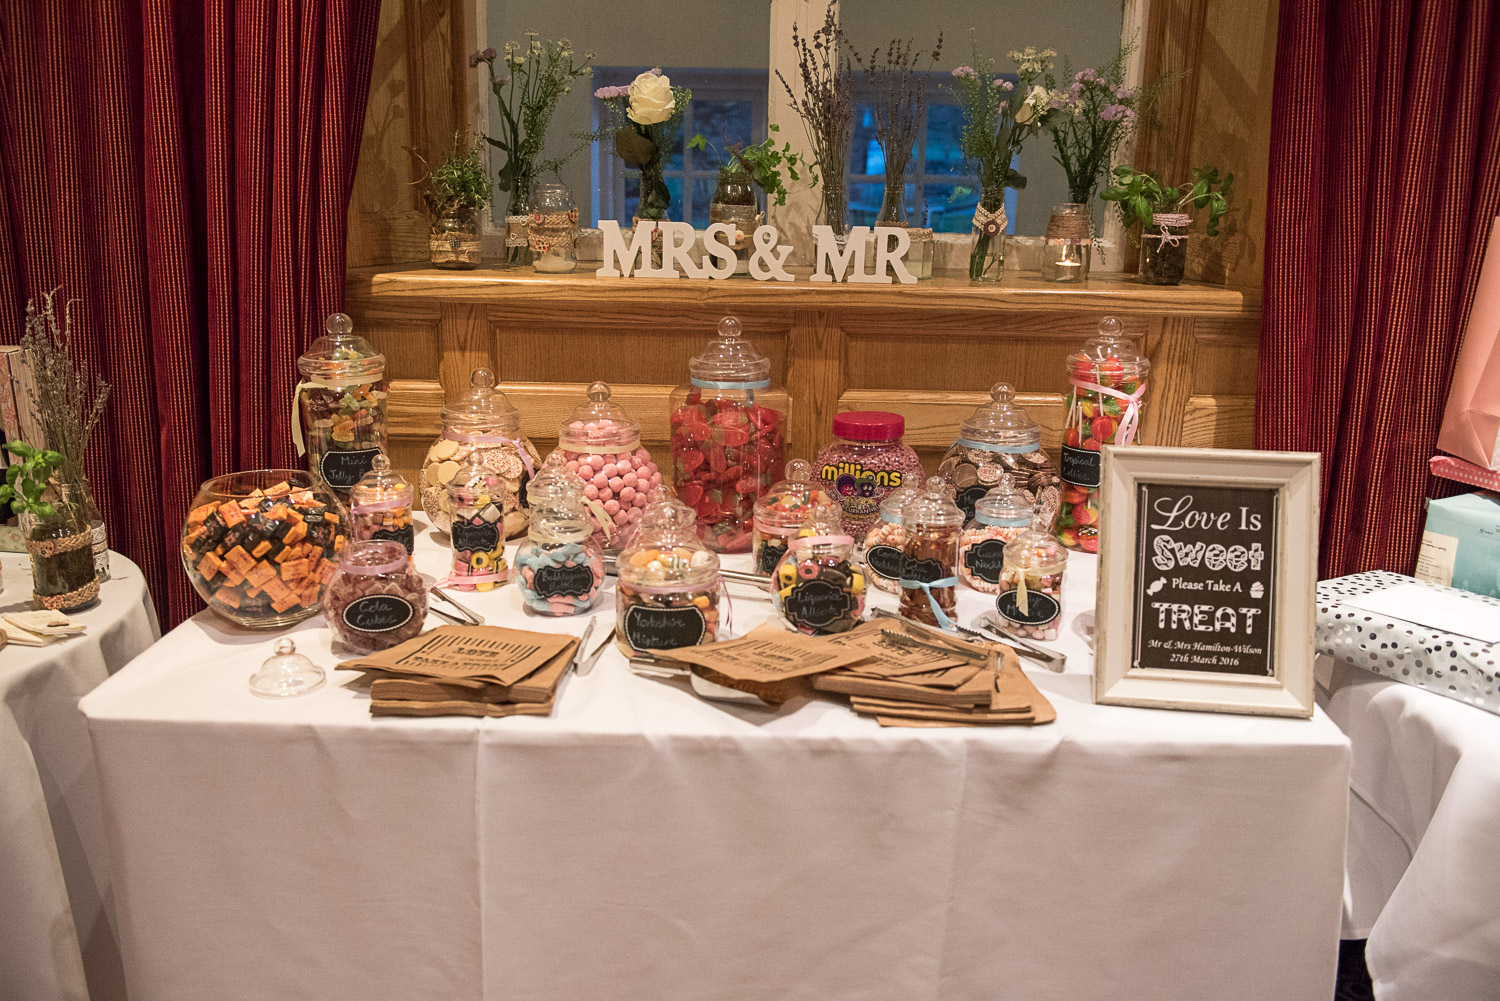 Wedding candy table at Devonshire Arms wedding venue in Bolton Abbey